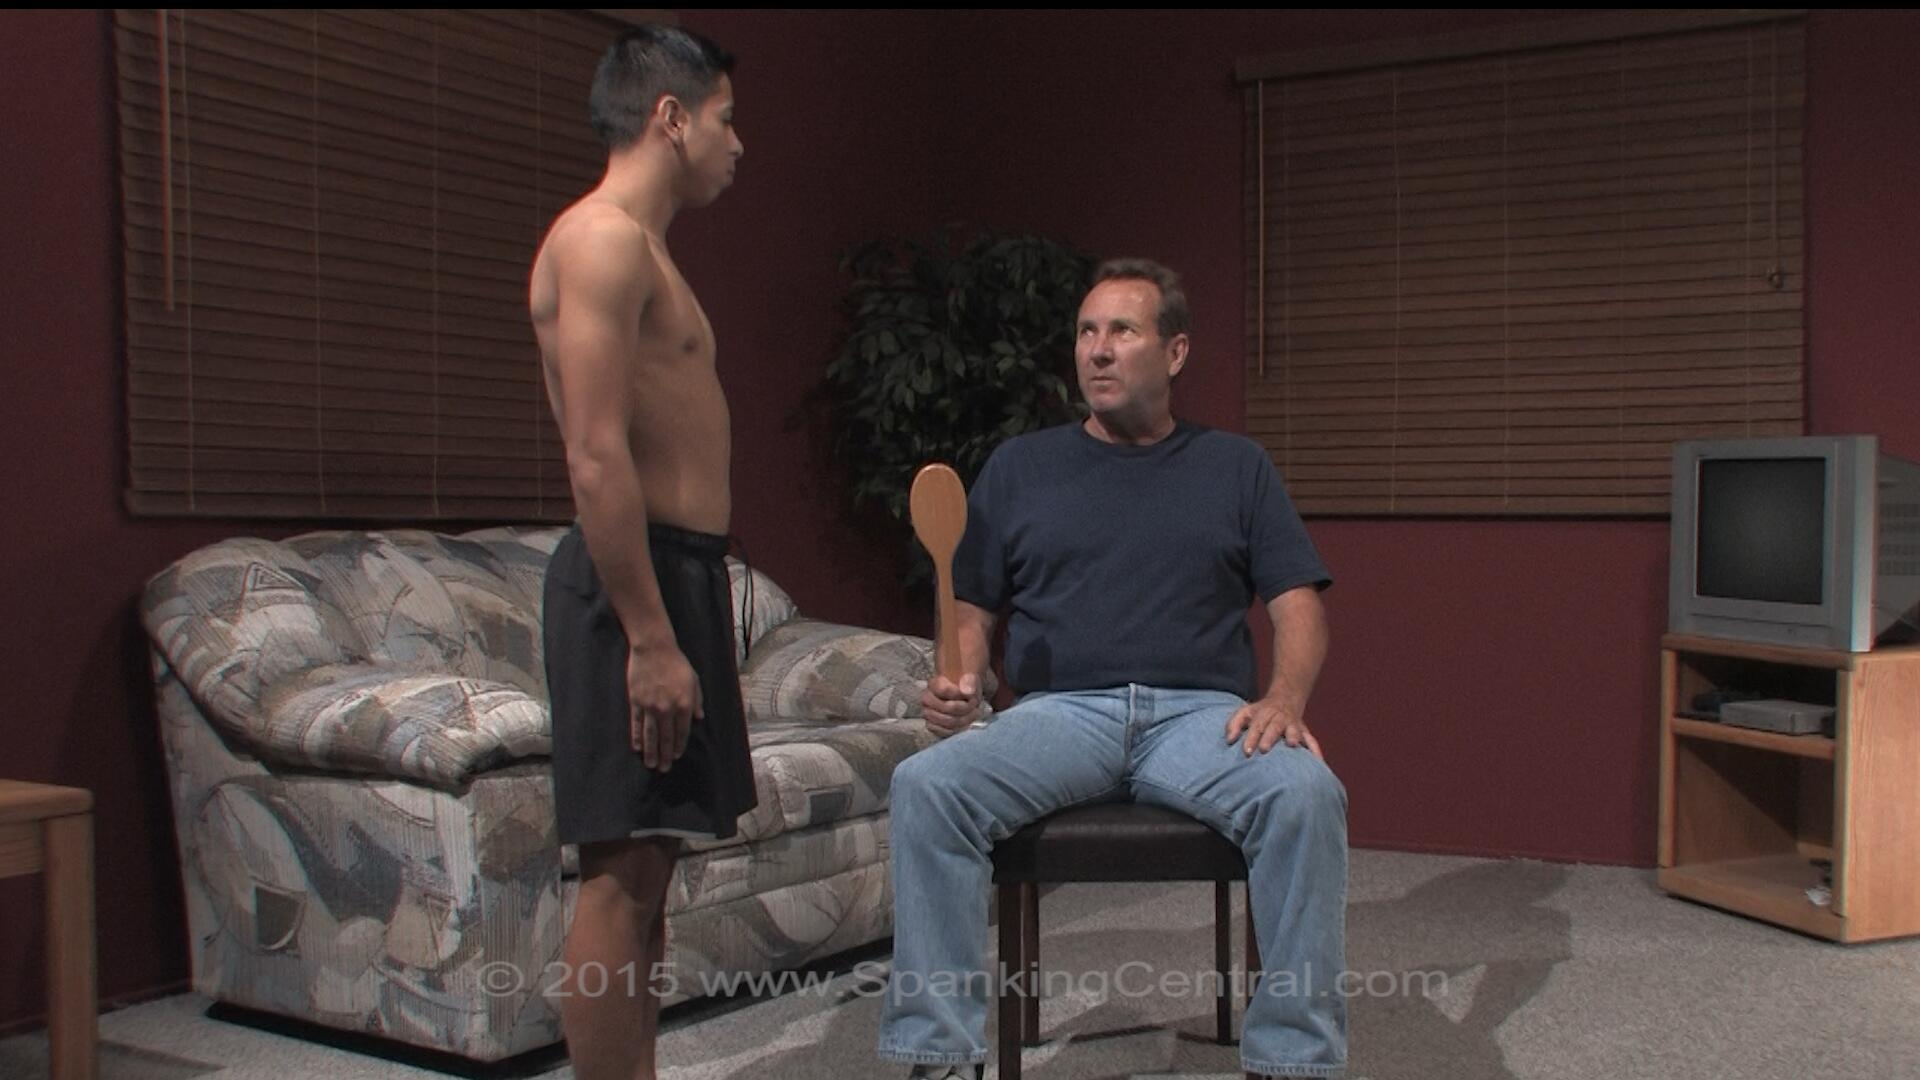 Spank central videos wow